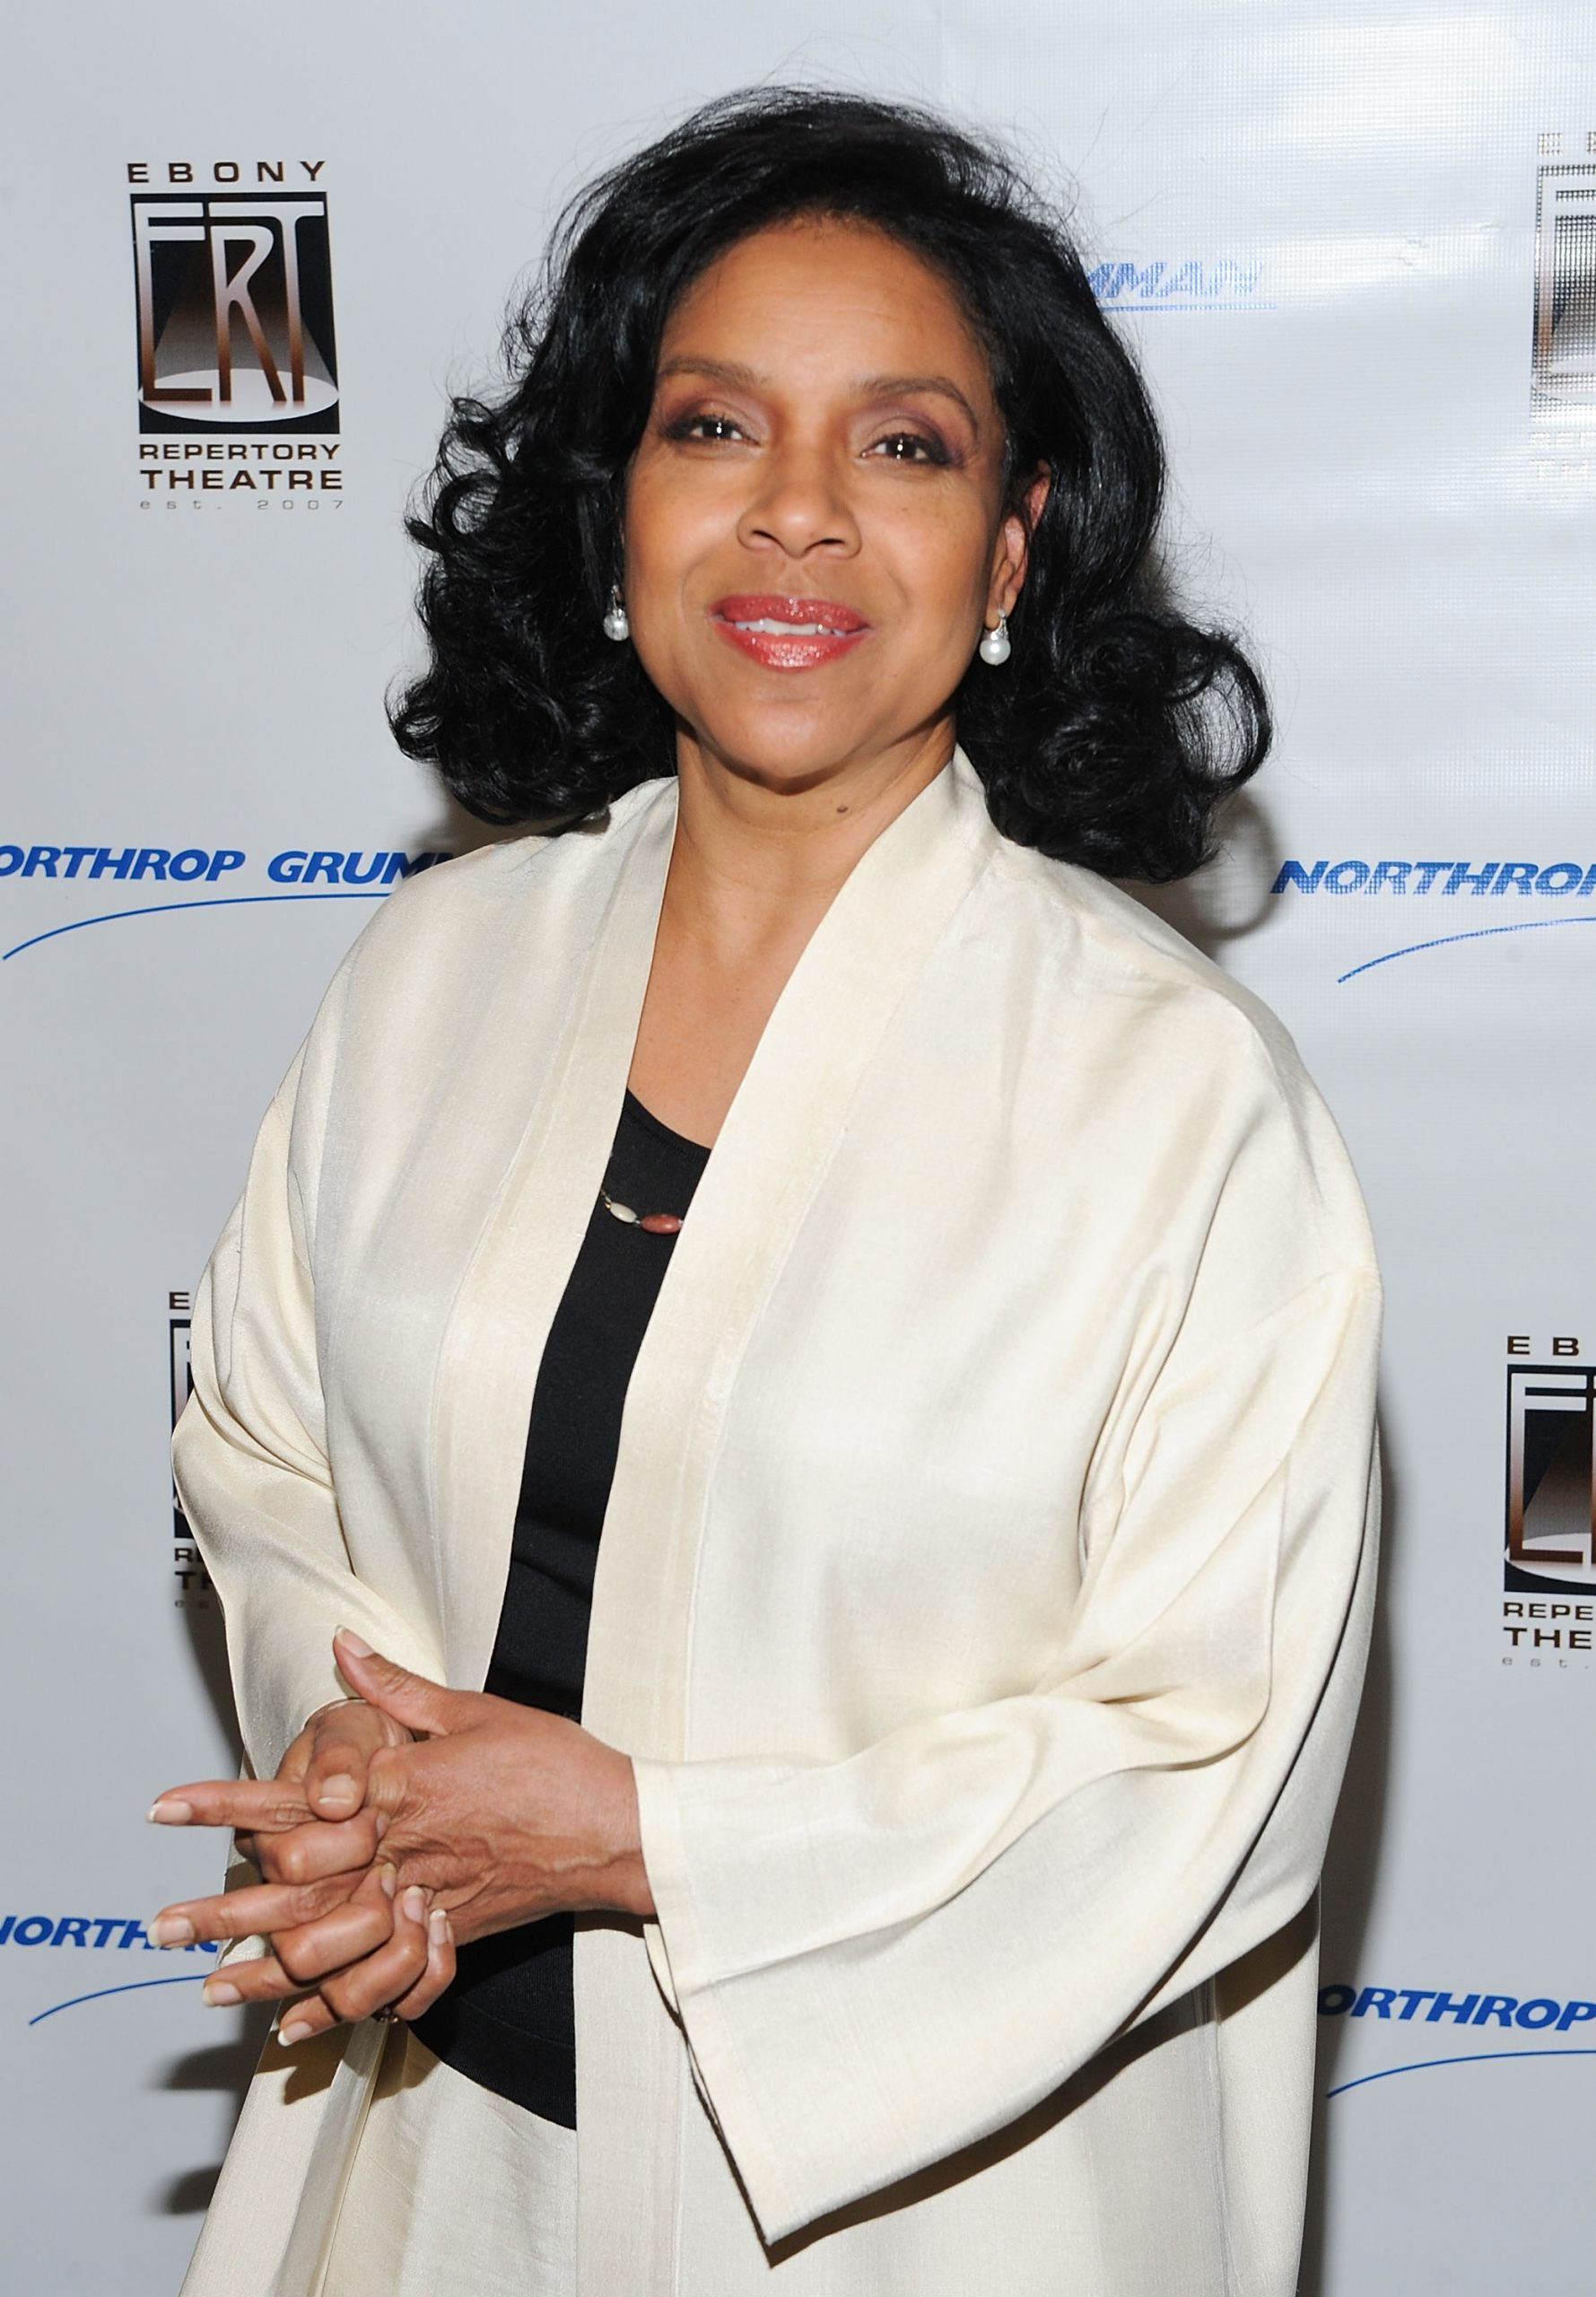 By Dennis J. Freeman As an accomplished actress, Phylicia Rashad's career is rich in depth and accolades. She recently starred...